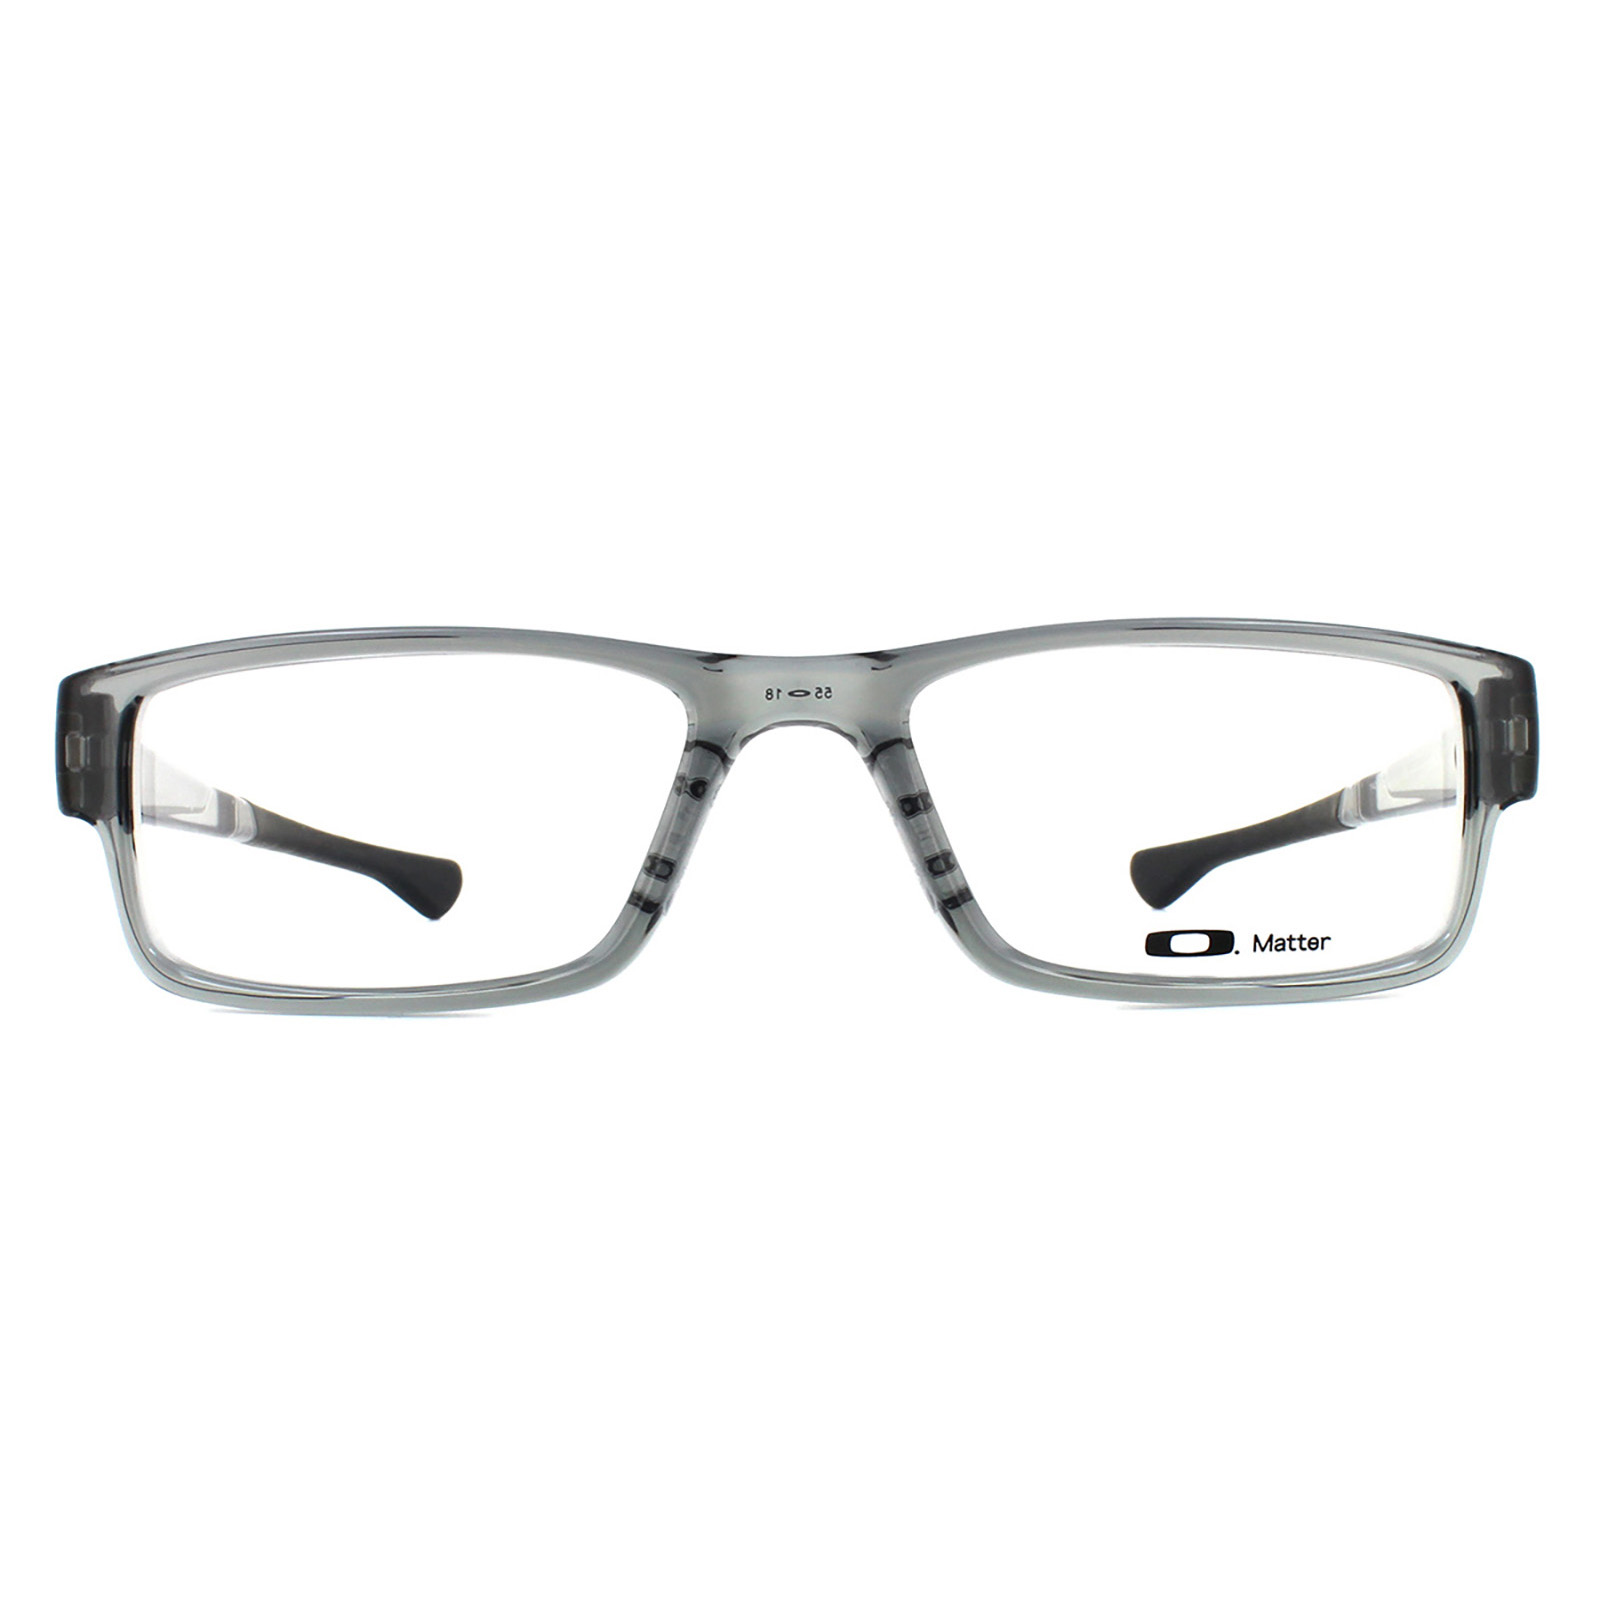 df8a1be7792 Oakley Airdrop Eyeglasses Uk - Bitterroot Public Library